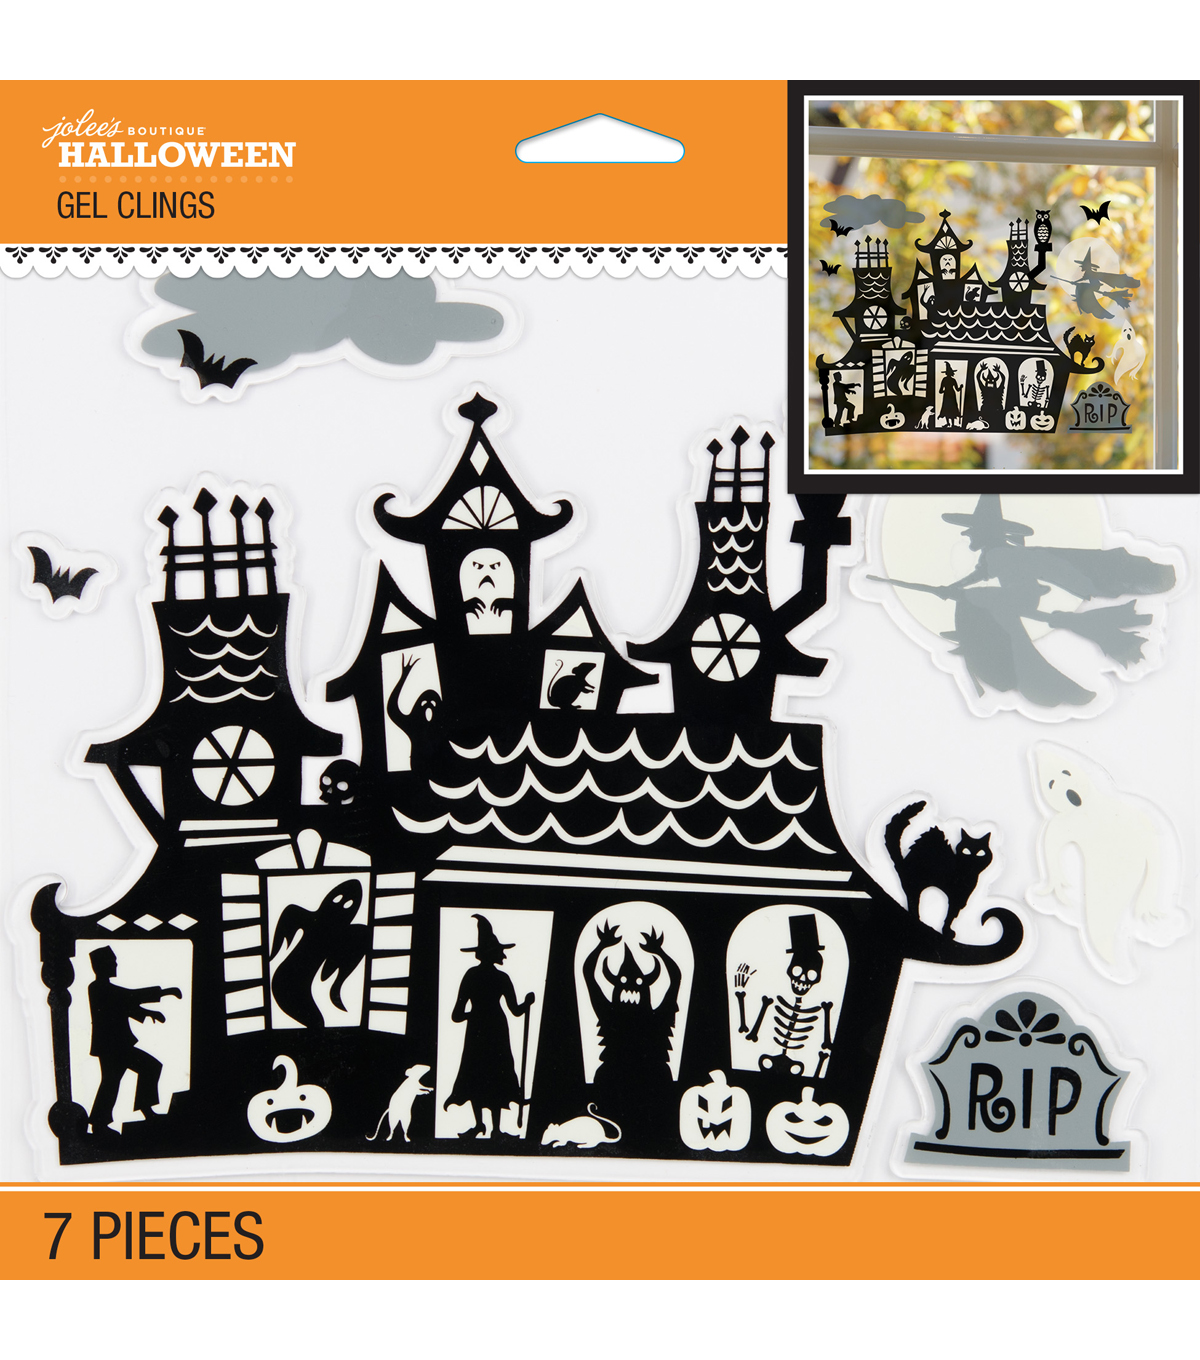 Jolee's Boutique Halloween Haunted House Gel Clings